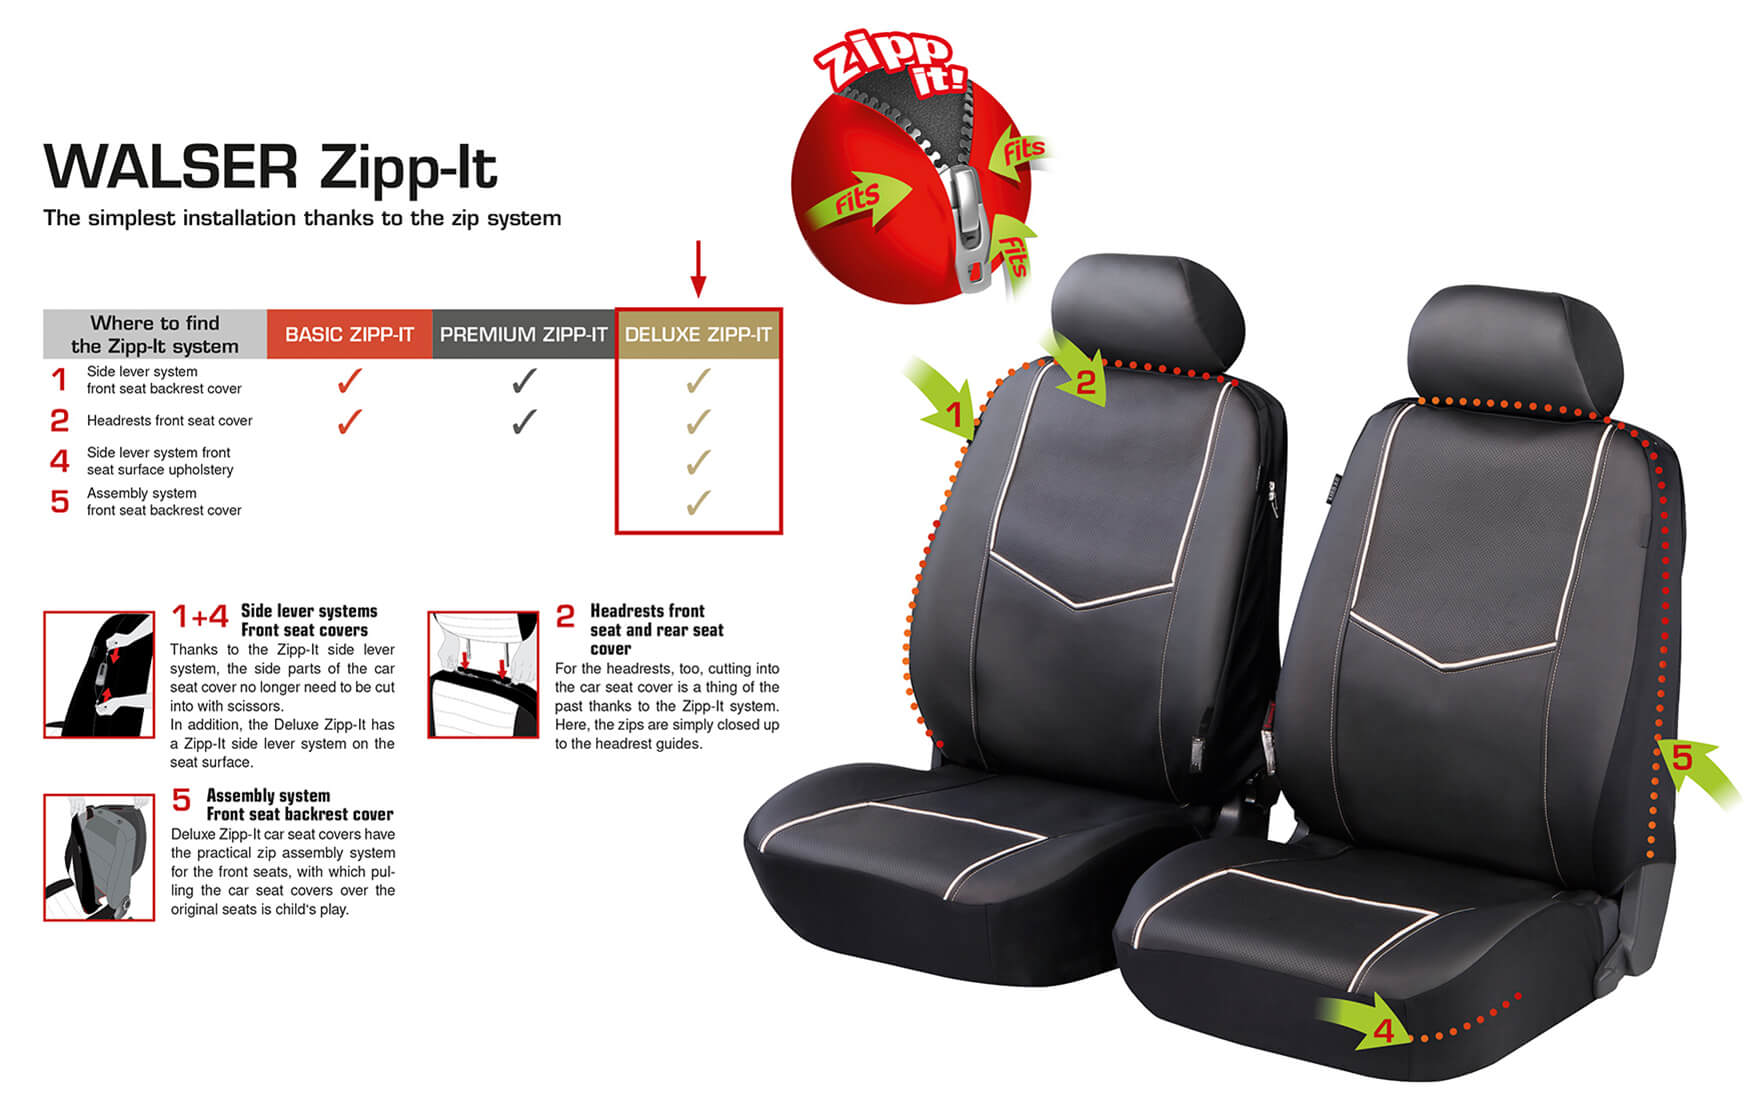 zipp it deluxe front car seat covers york made of. Black Bedroom Furniture Sets. Home Design Ideas